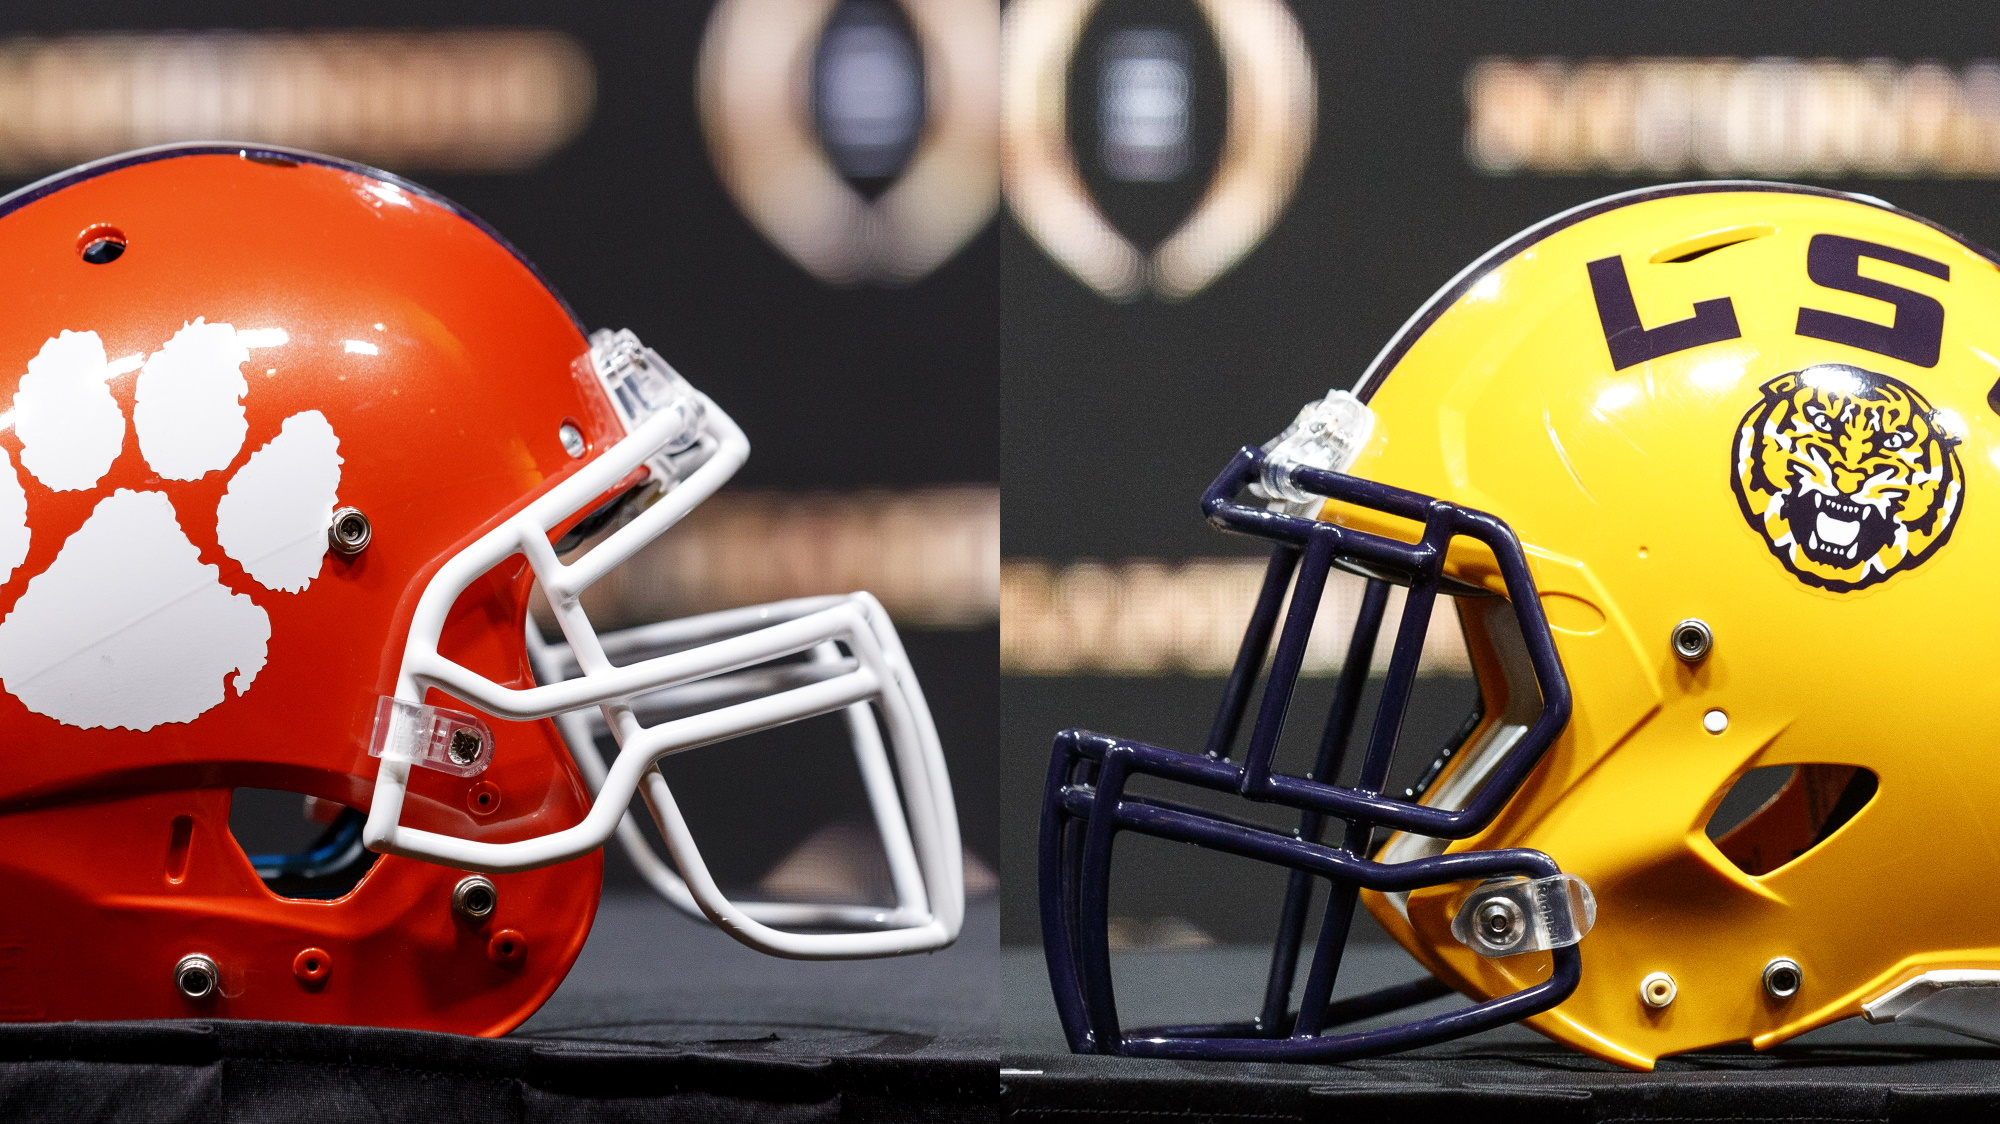 Clemson vs LSU live stream: how to watch the 2020 College Football National Championship from anywhere